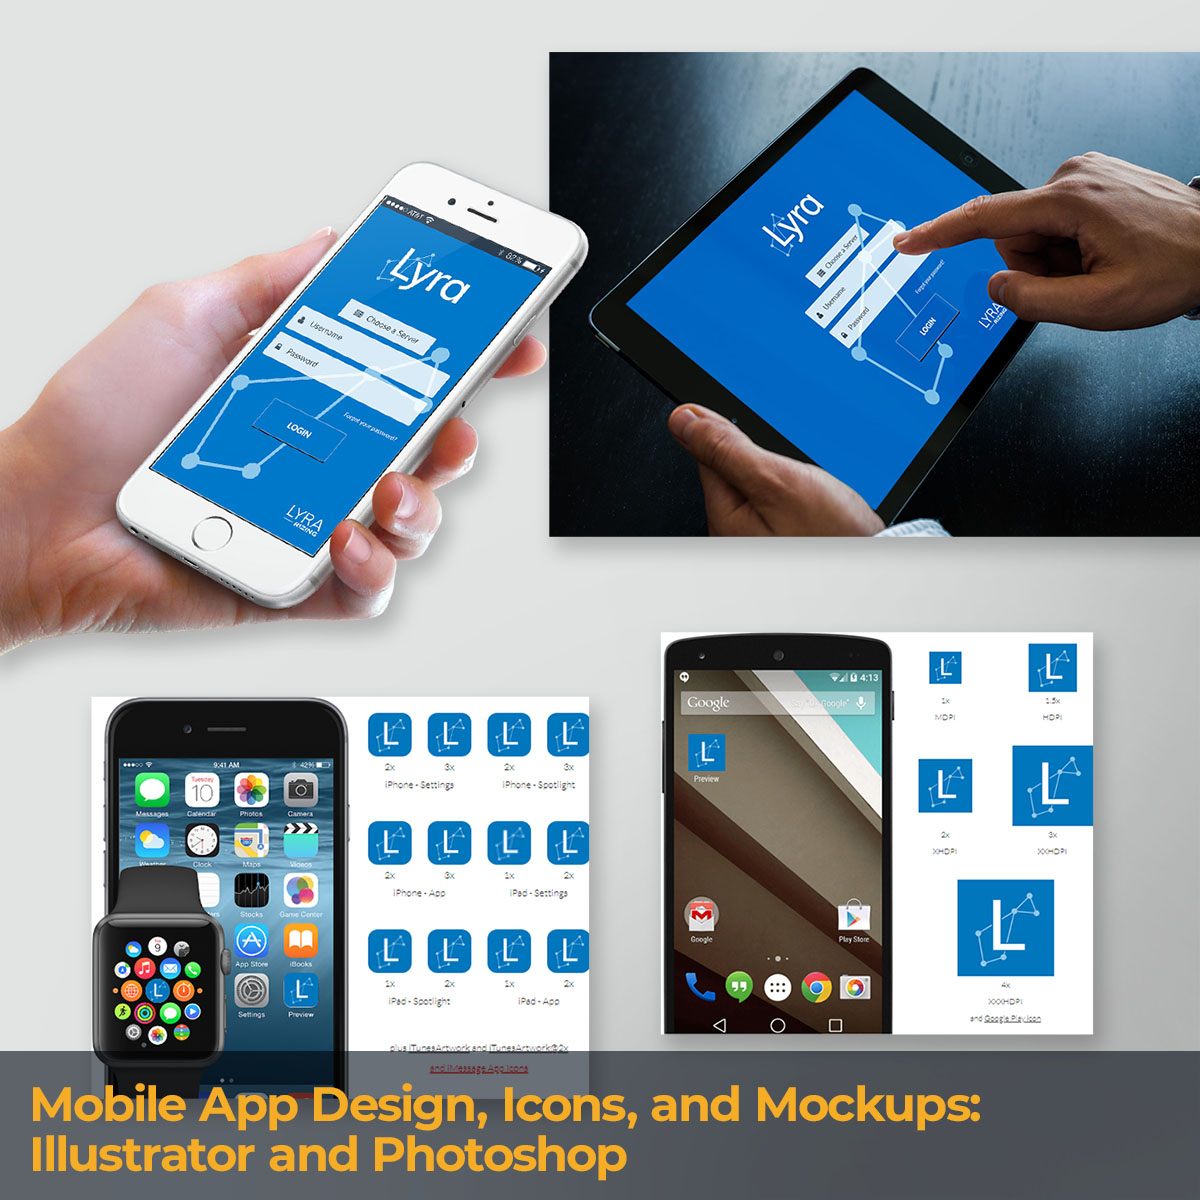 Mobile App Design, Icons, and Mockups